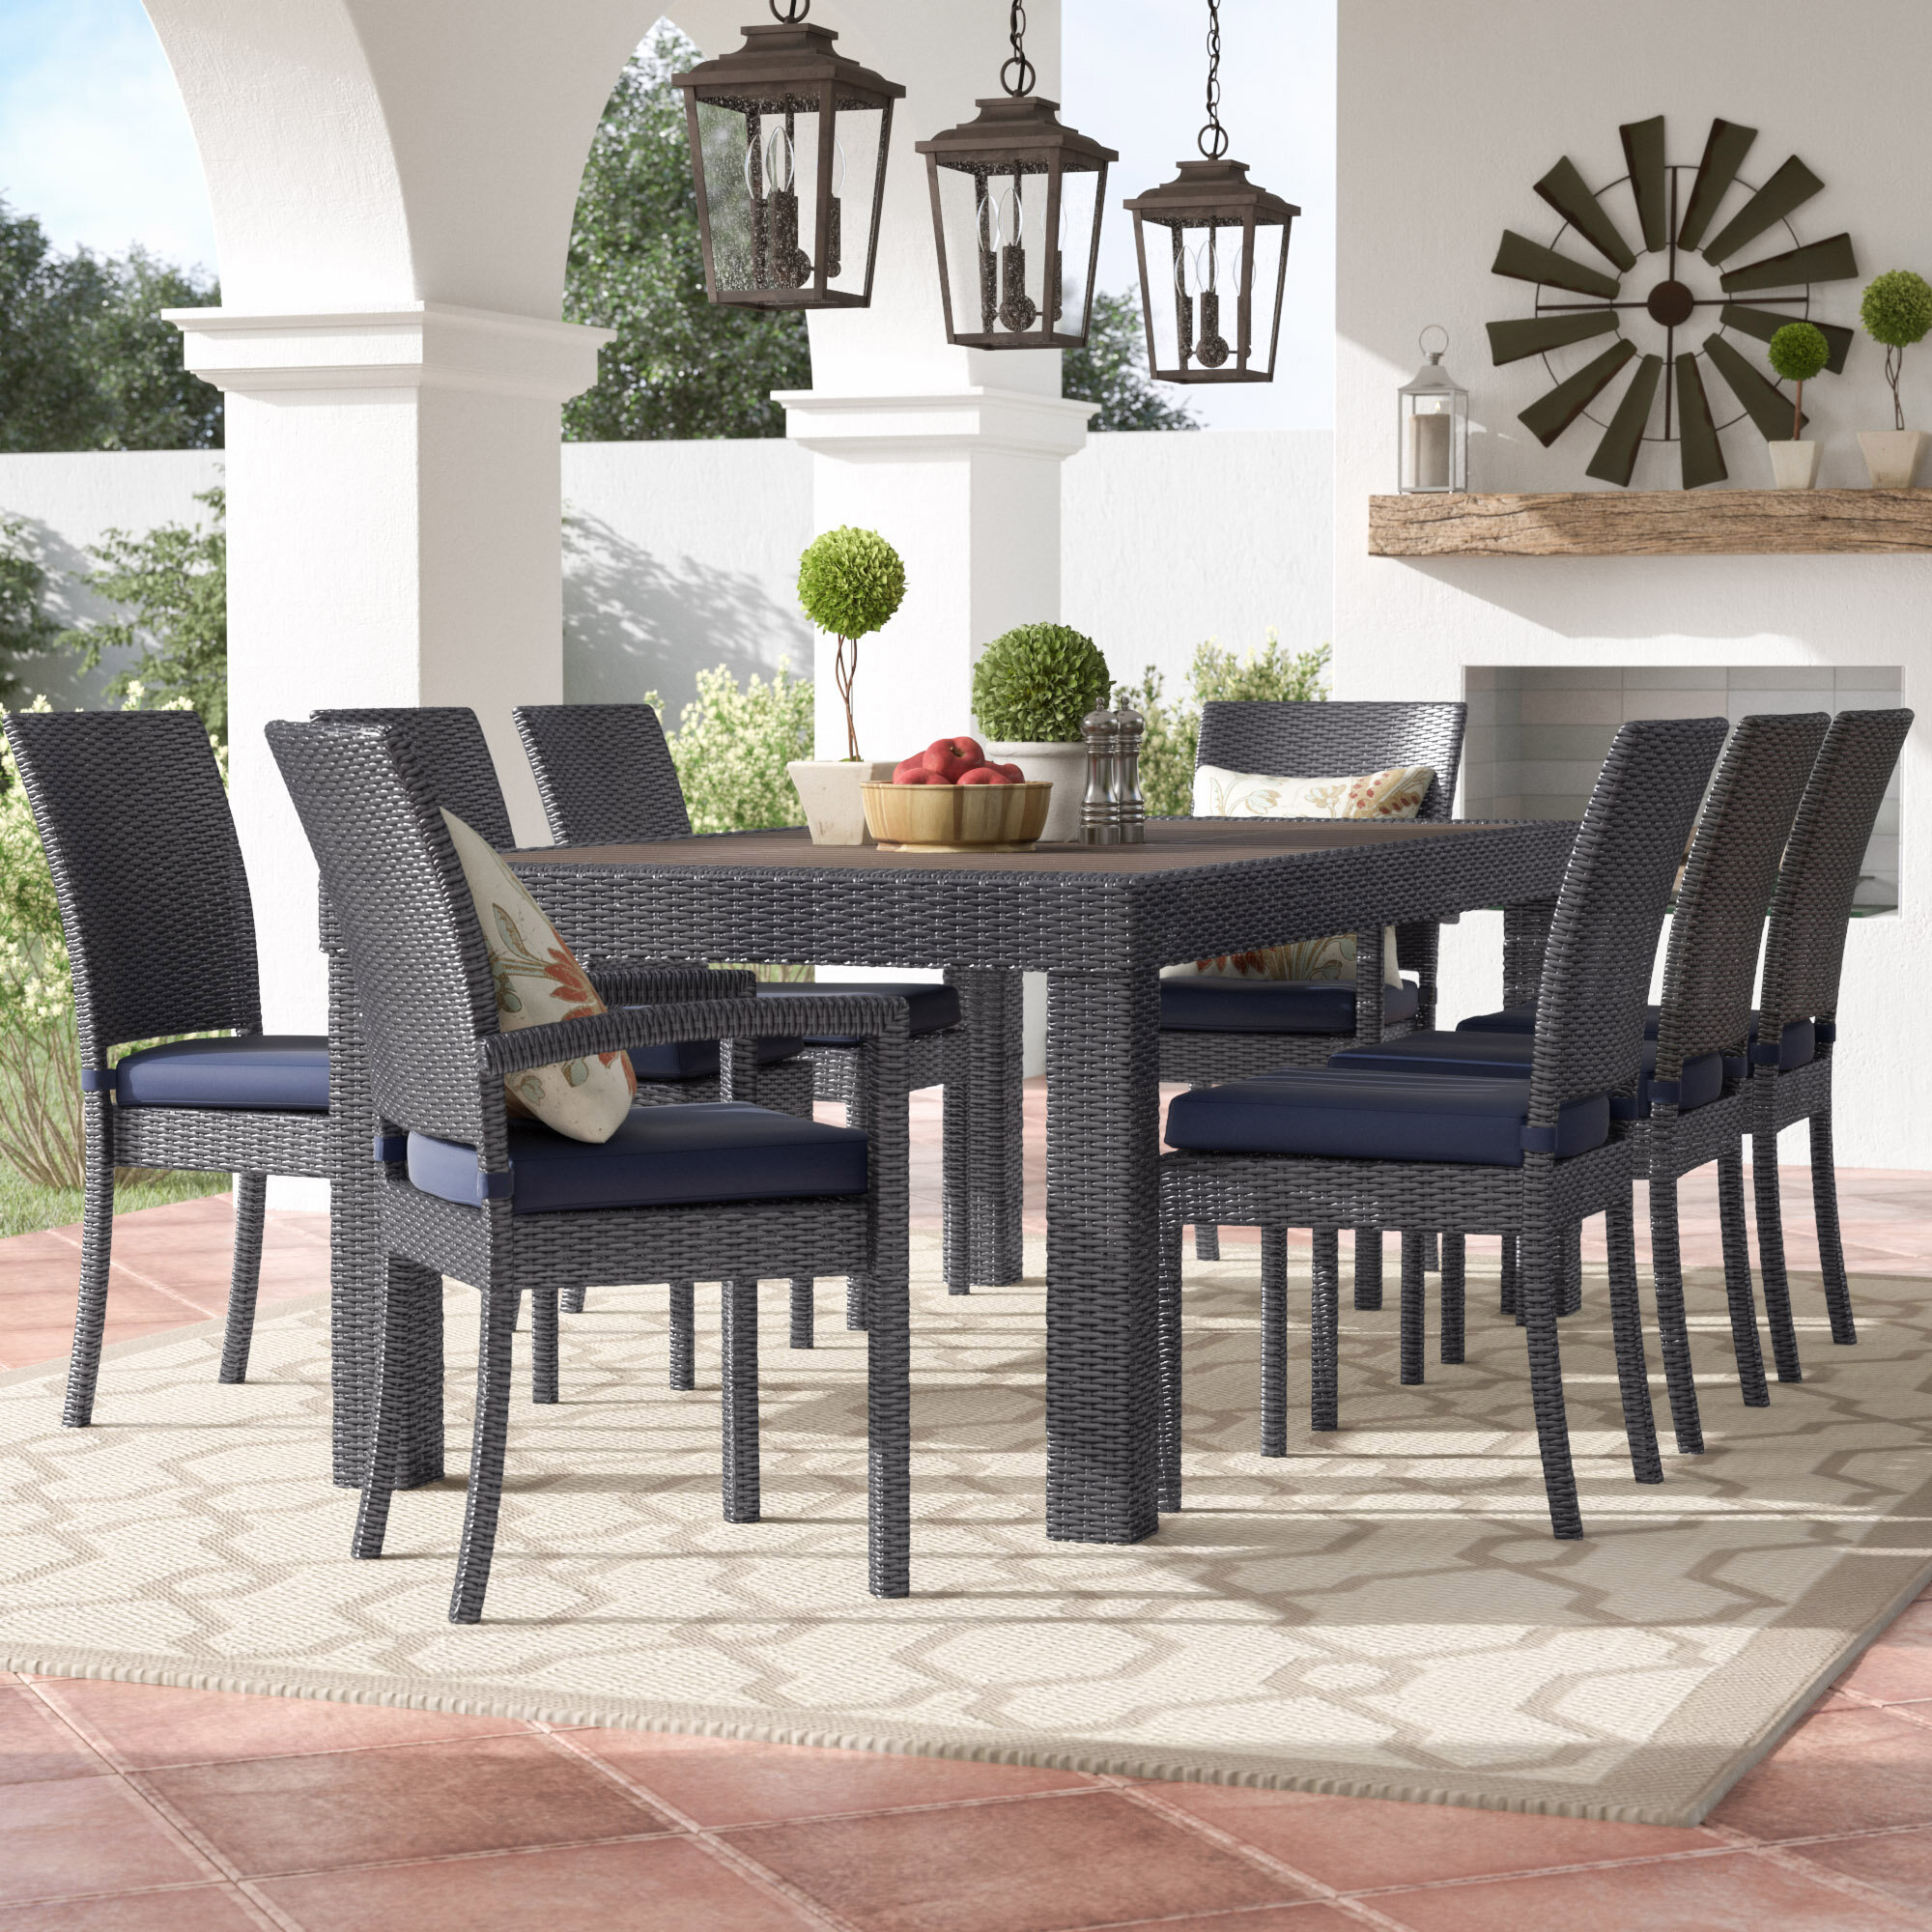 Three Posts Evansville 9 Piece Outdoor Dining Set with Cushion ... on kitchen cabinets outdoor, kitchen wood outdoor, grill tops outdoor,